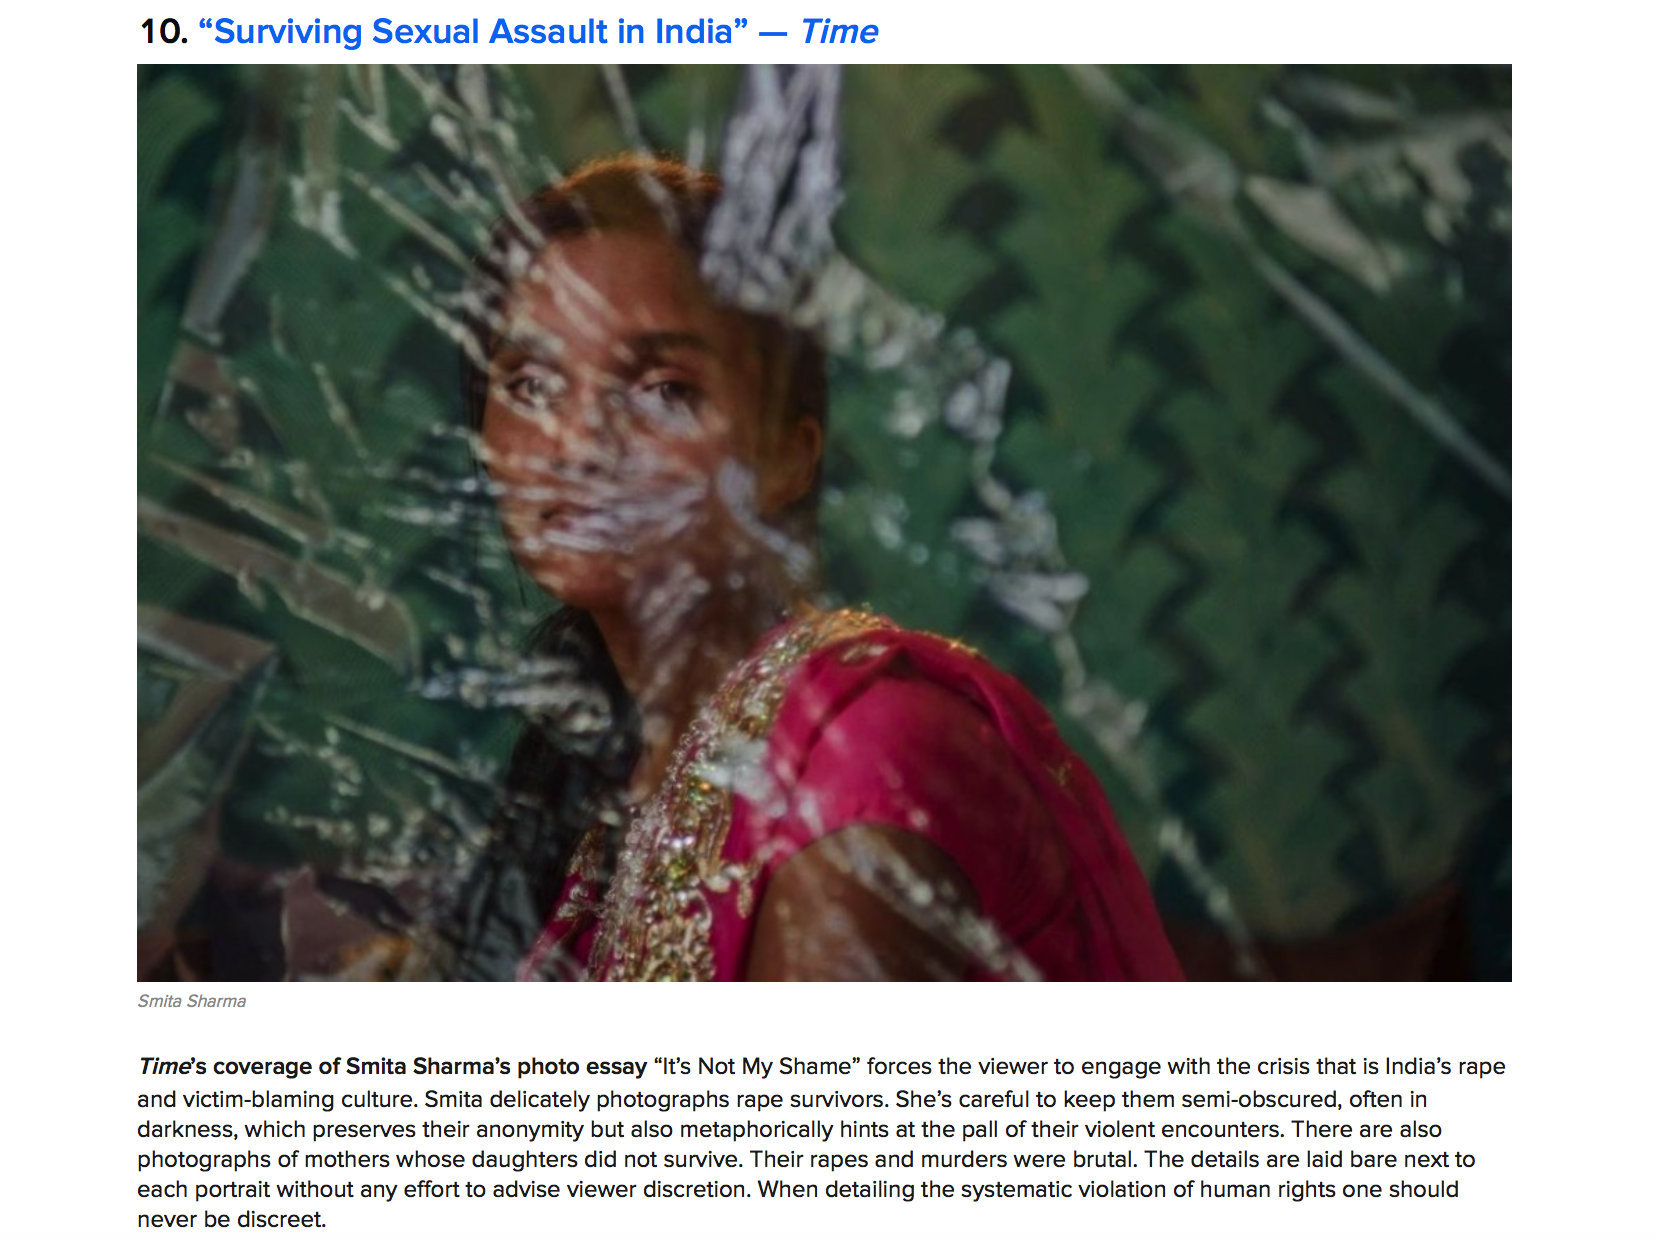 http://time.com/4705833/sexual-assault-india/